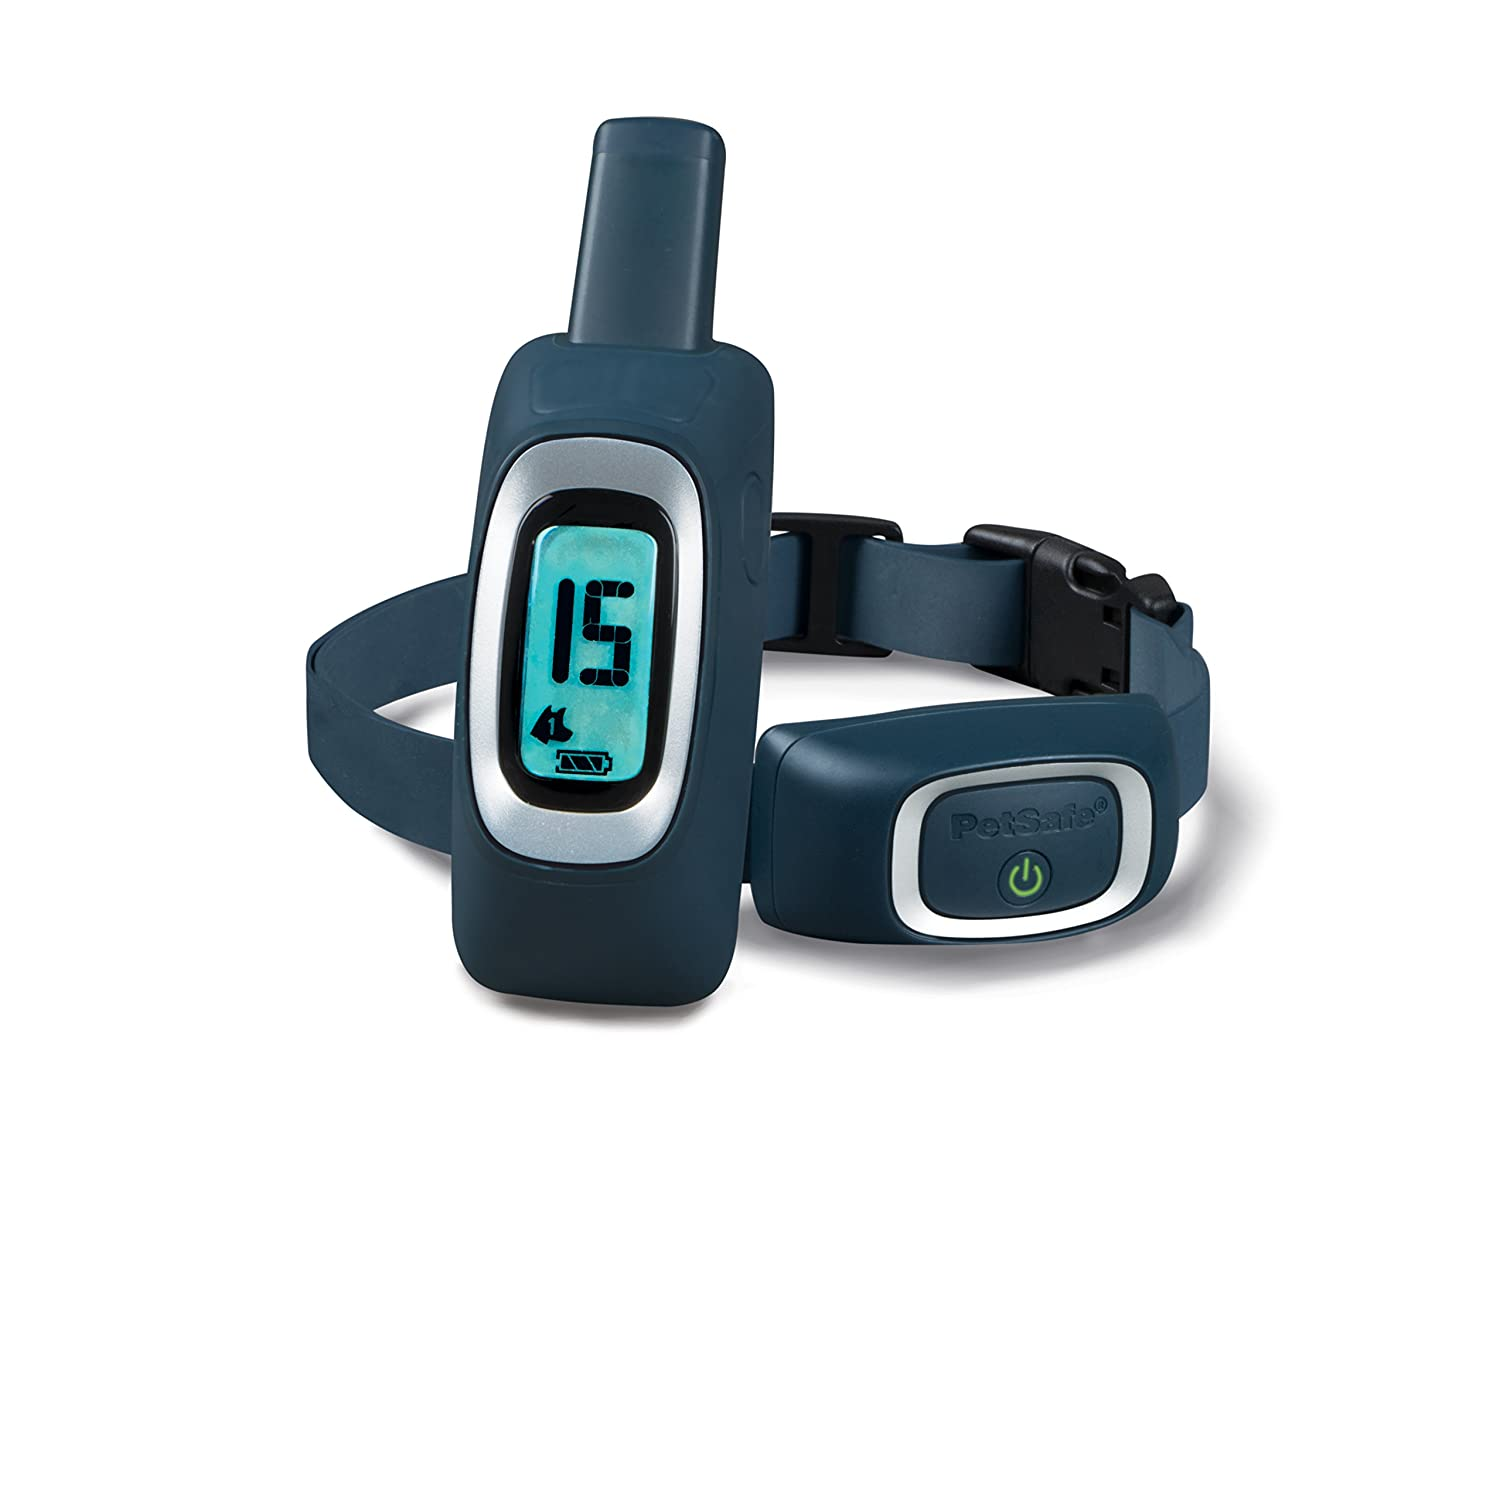 900 Yard PetSafe 900 Yard Remote Trainer, Rechargeable, Waterproof, Tone Vibration   15 Levels of Static Stimulation for Dogs Over 8 lb.